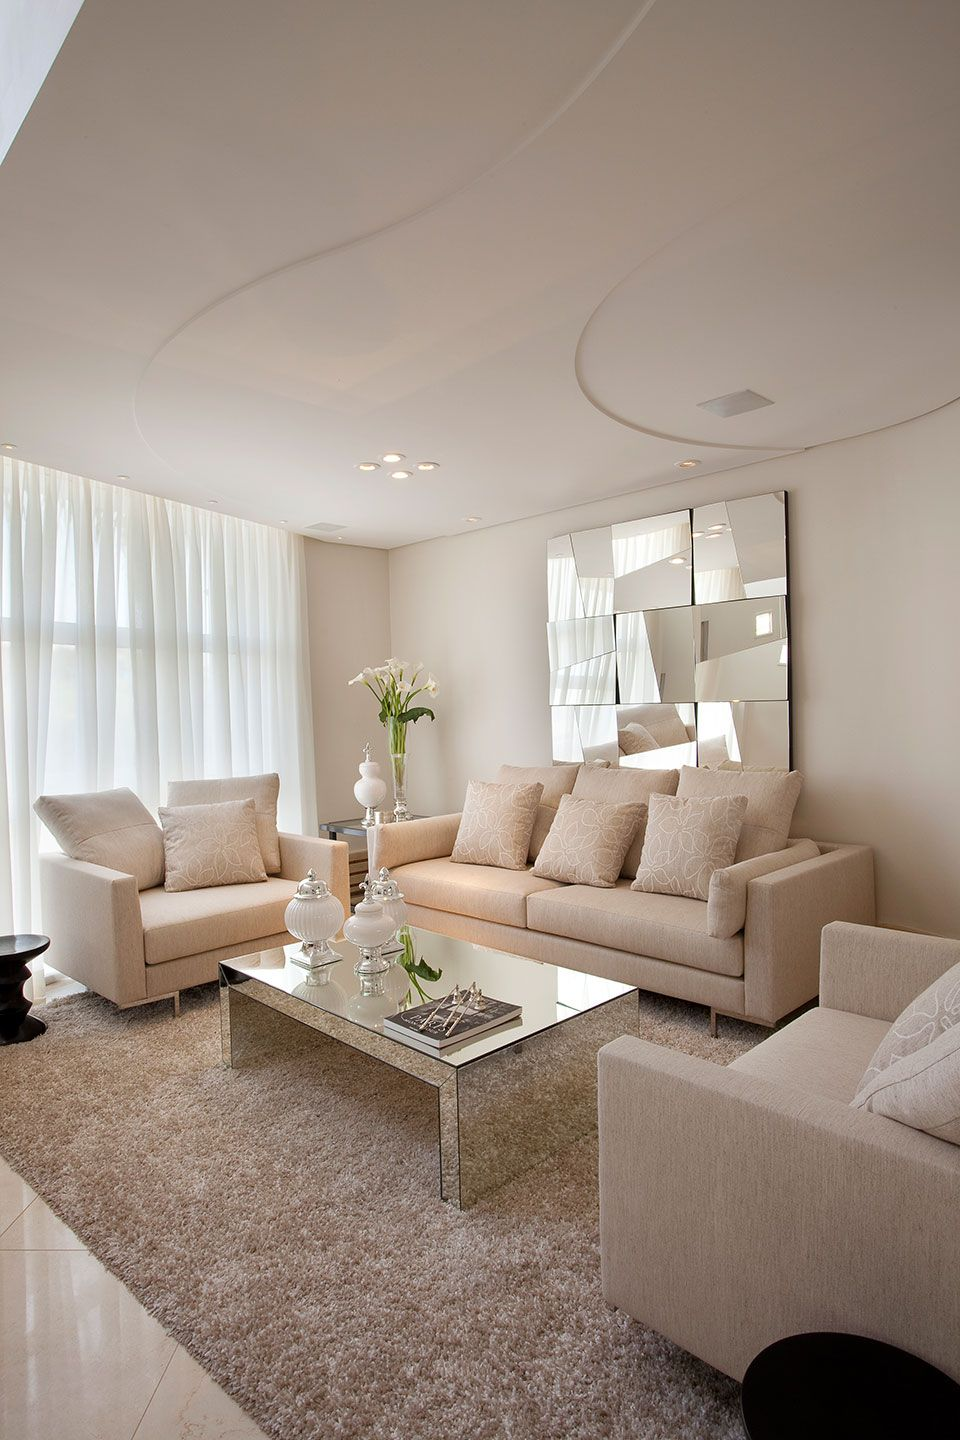 Interior home decorating ideas living room pin by robyn pitocco on home decor  pinterest  living rooms room